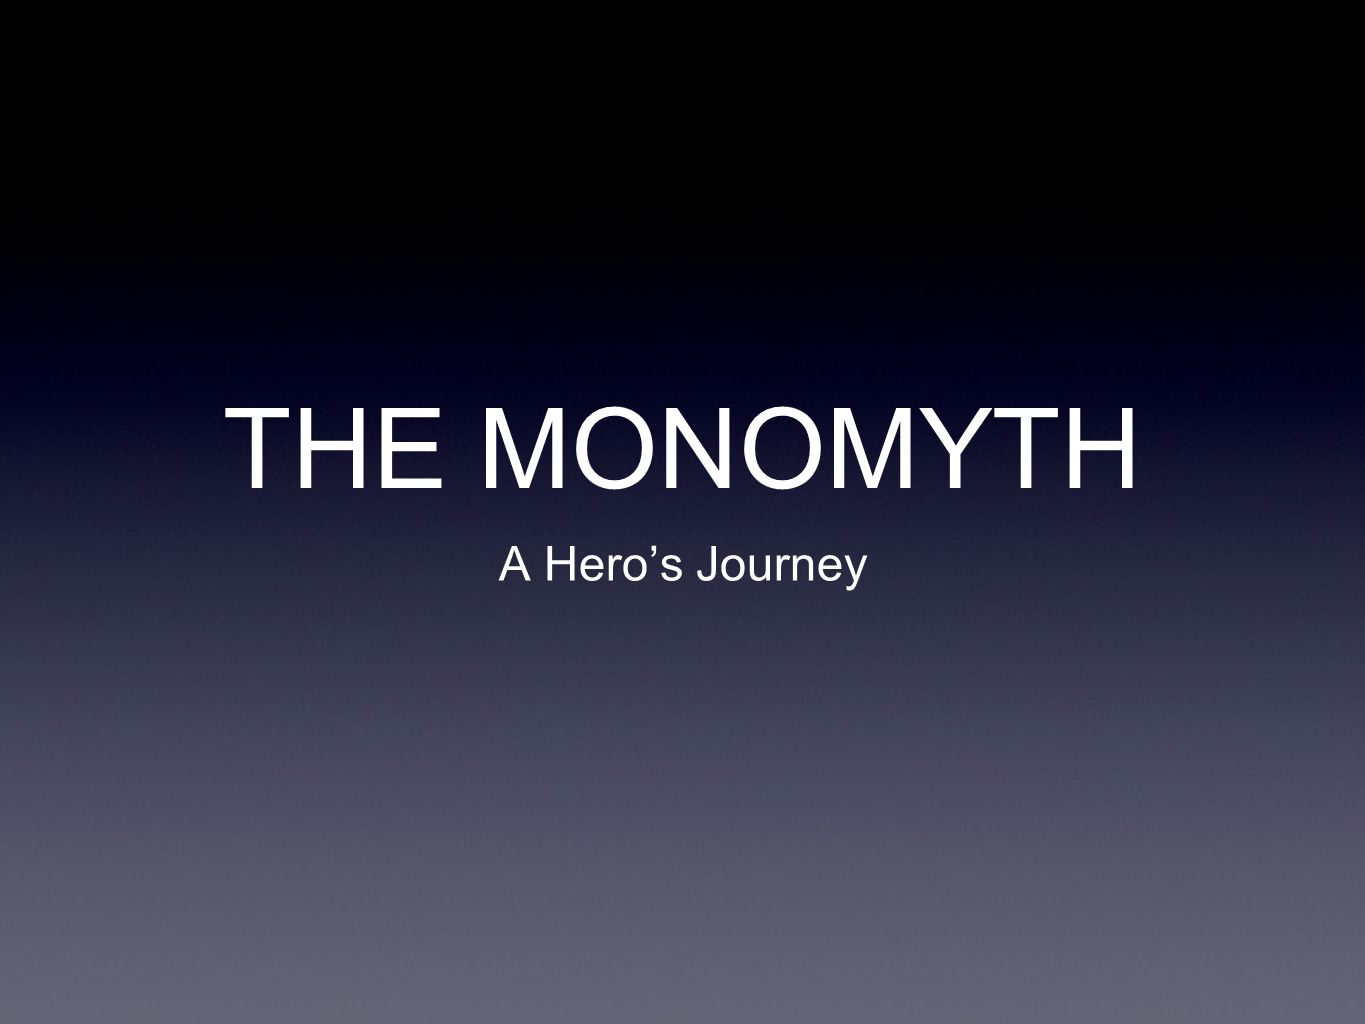 What is a monomythic hero?